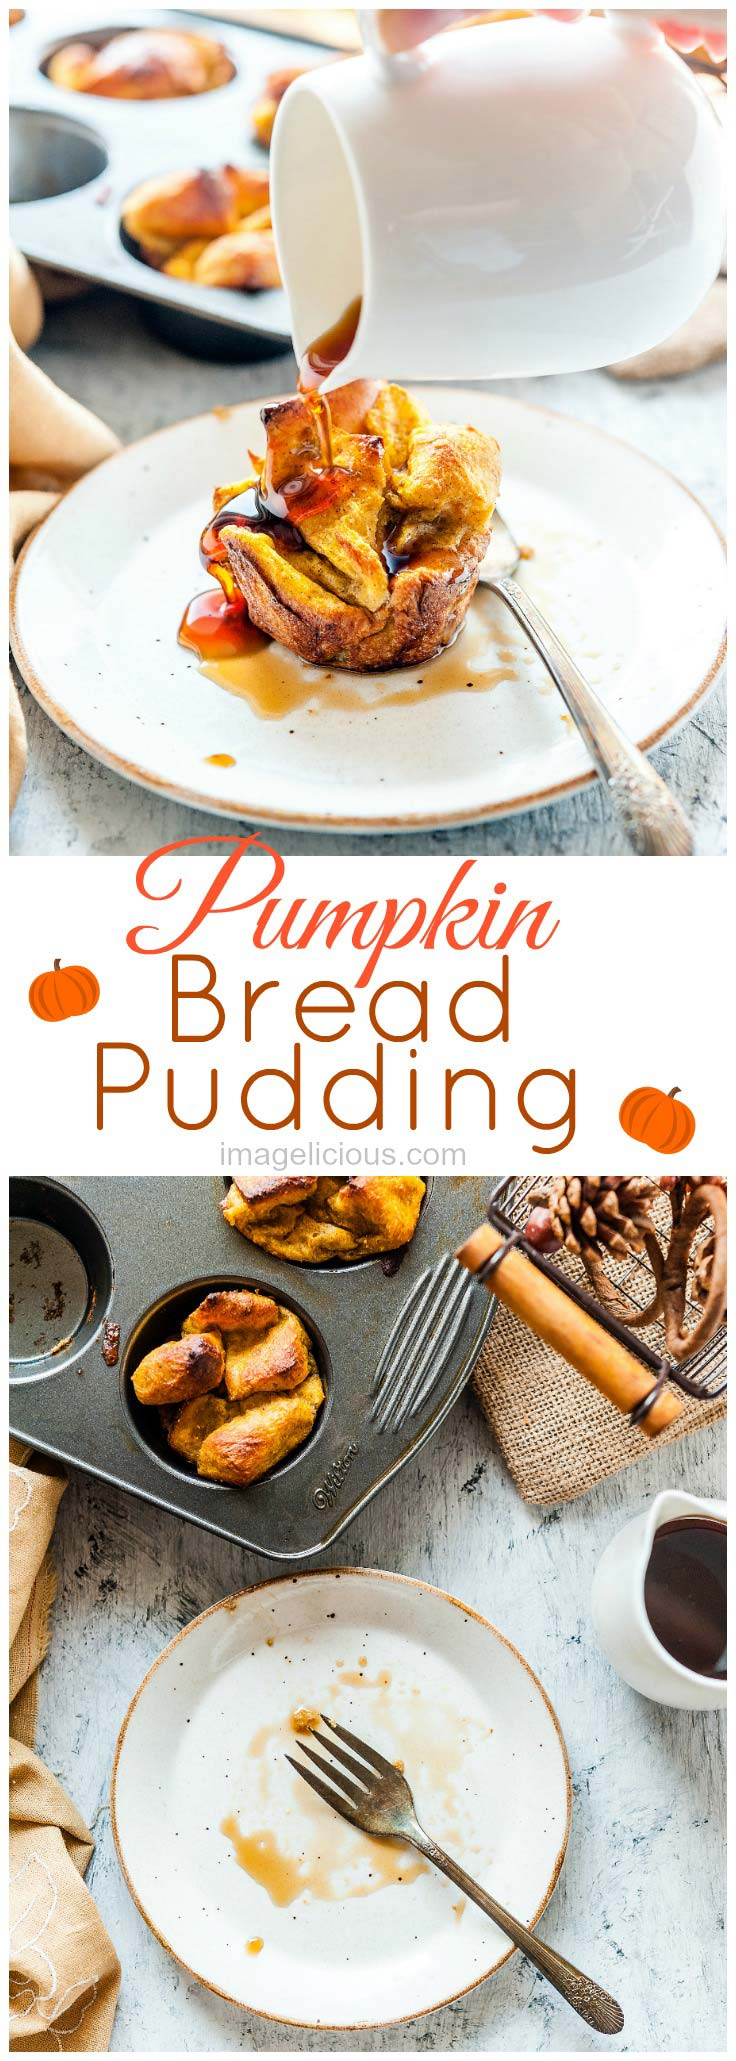 pumpkin | pumpkin recipes | pumpkin dessert | pumpkin breakfast | pumpkin bread pudding | bread | pudding | bread pudding | breakfast | brunch | fall | autumn | thanksgiving | maple syrup | easy | baking | cozy | Imagelicious